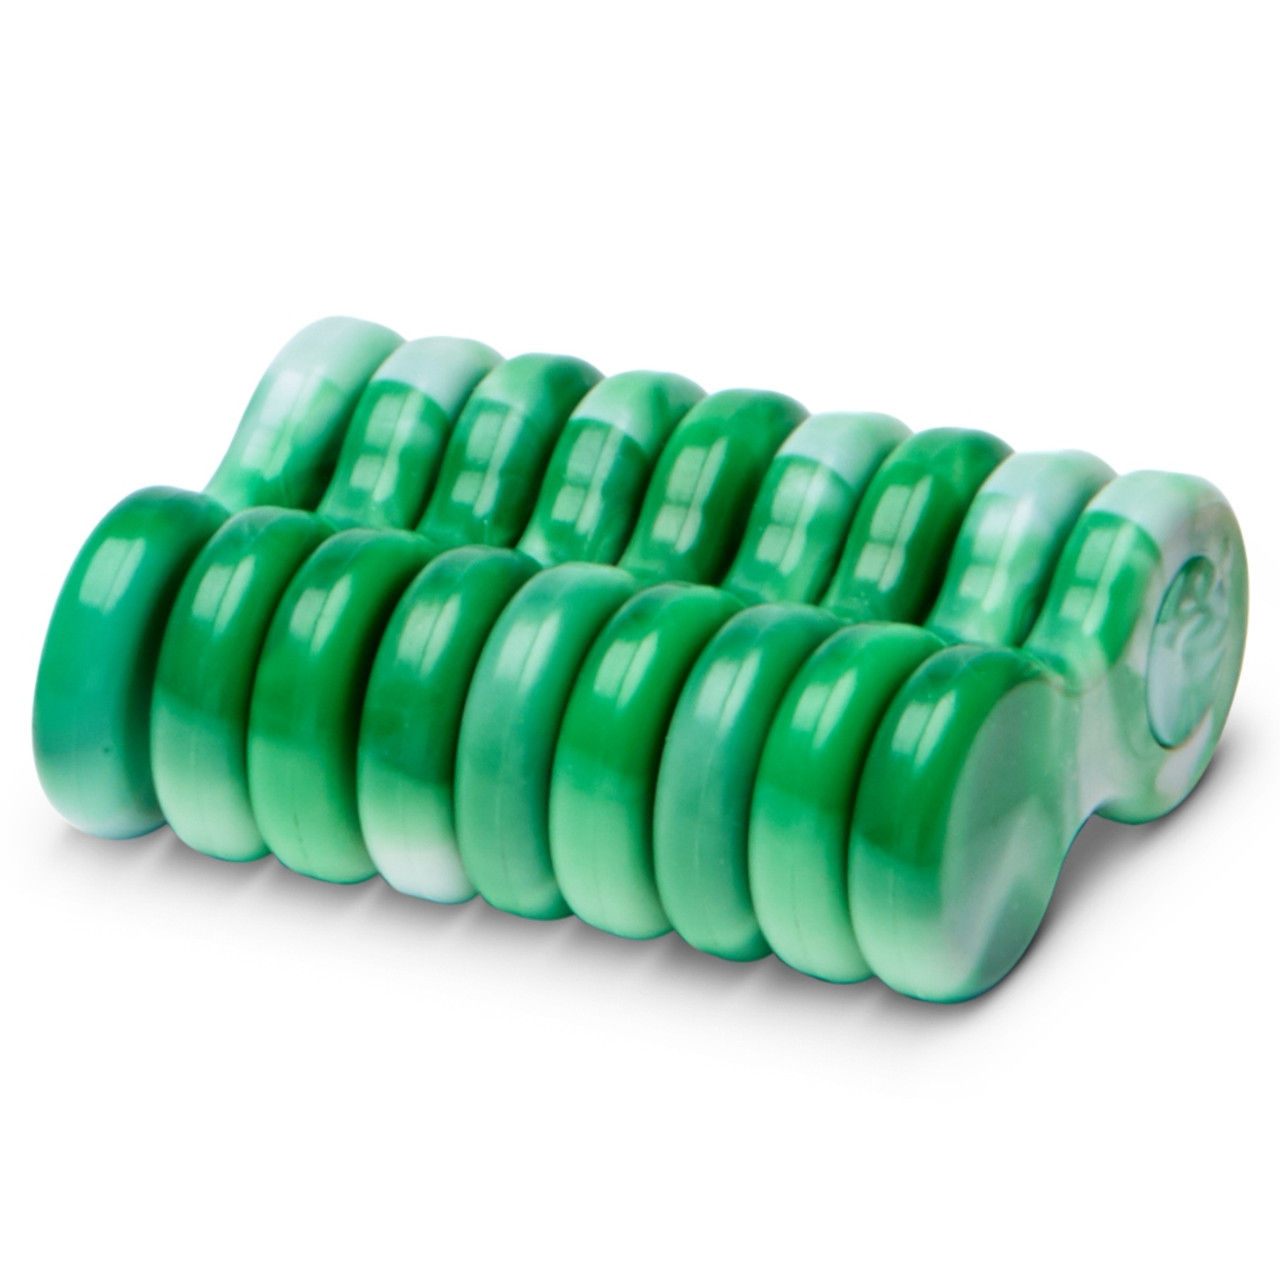 Helix Fidget Toy; green